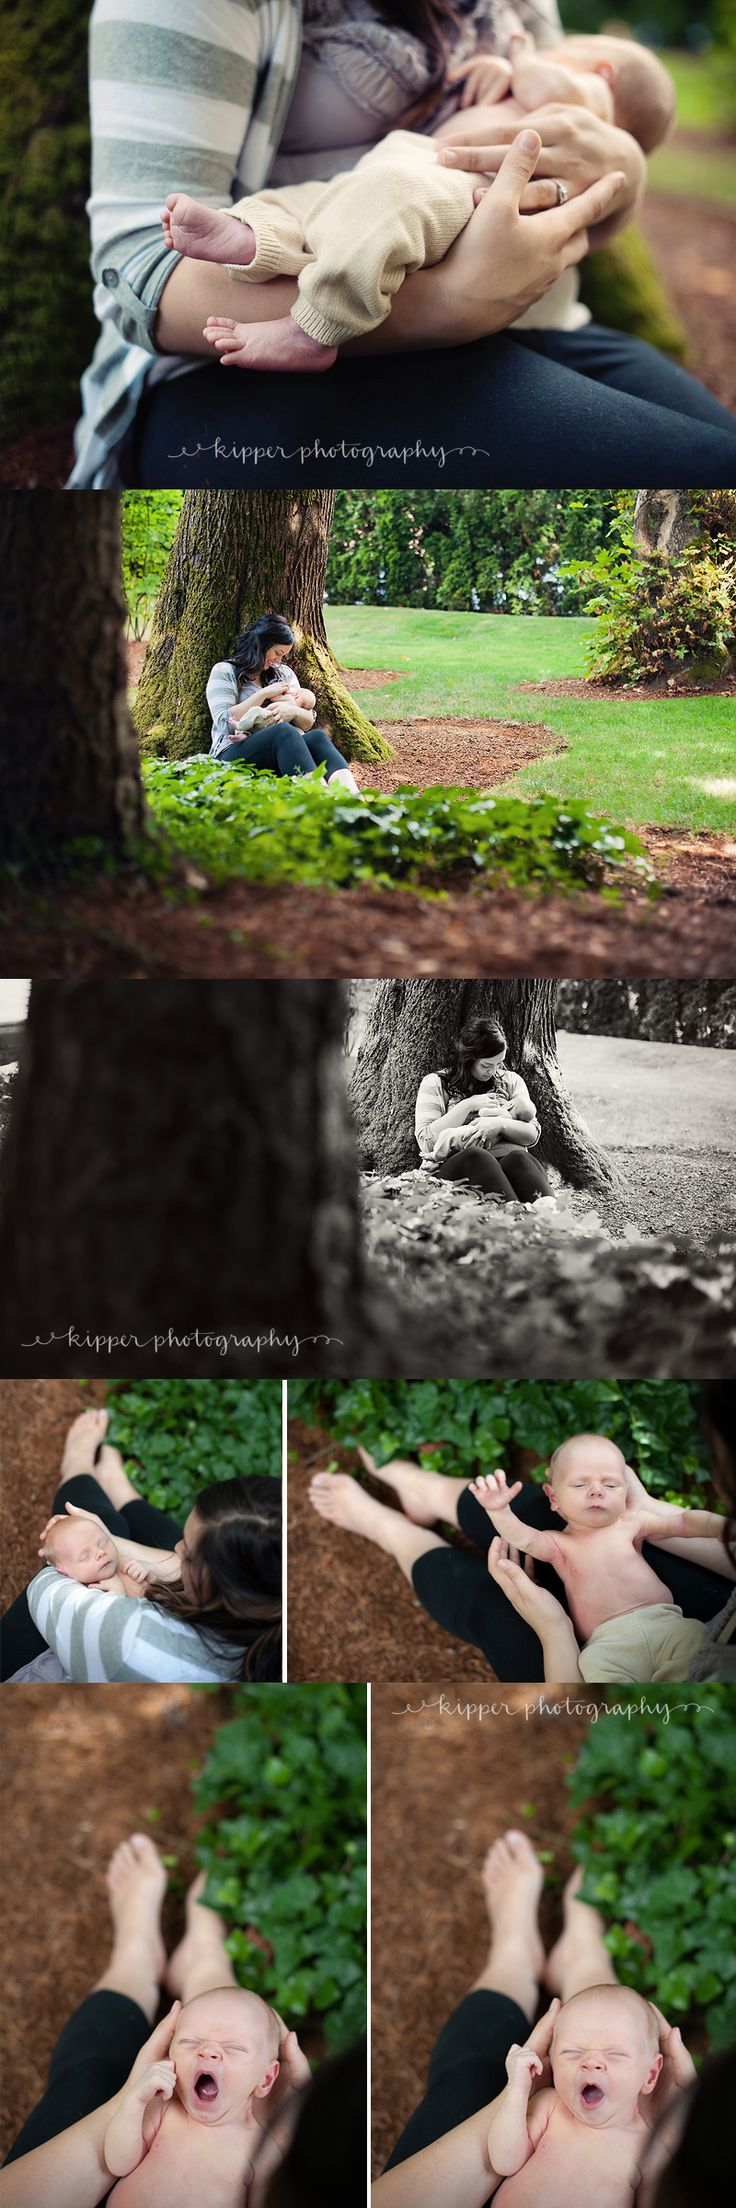 Breastfeeding outdoor photo shoot. I would love to do this!